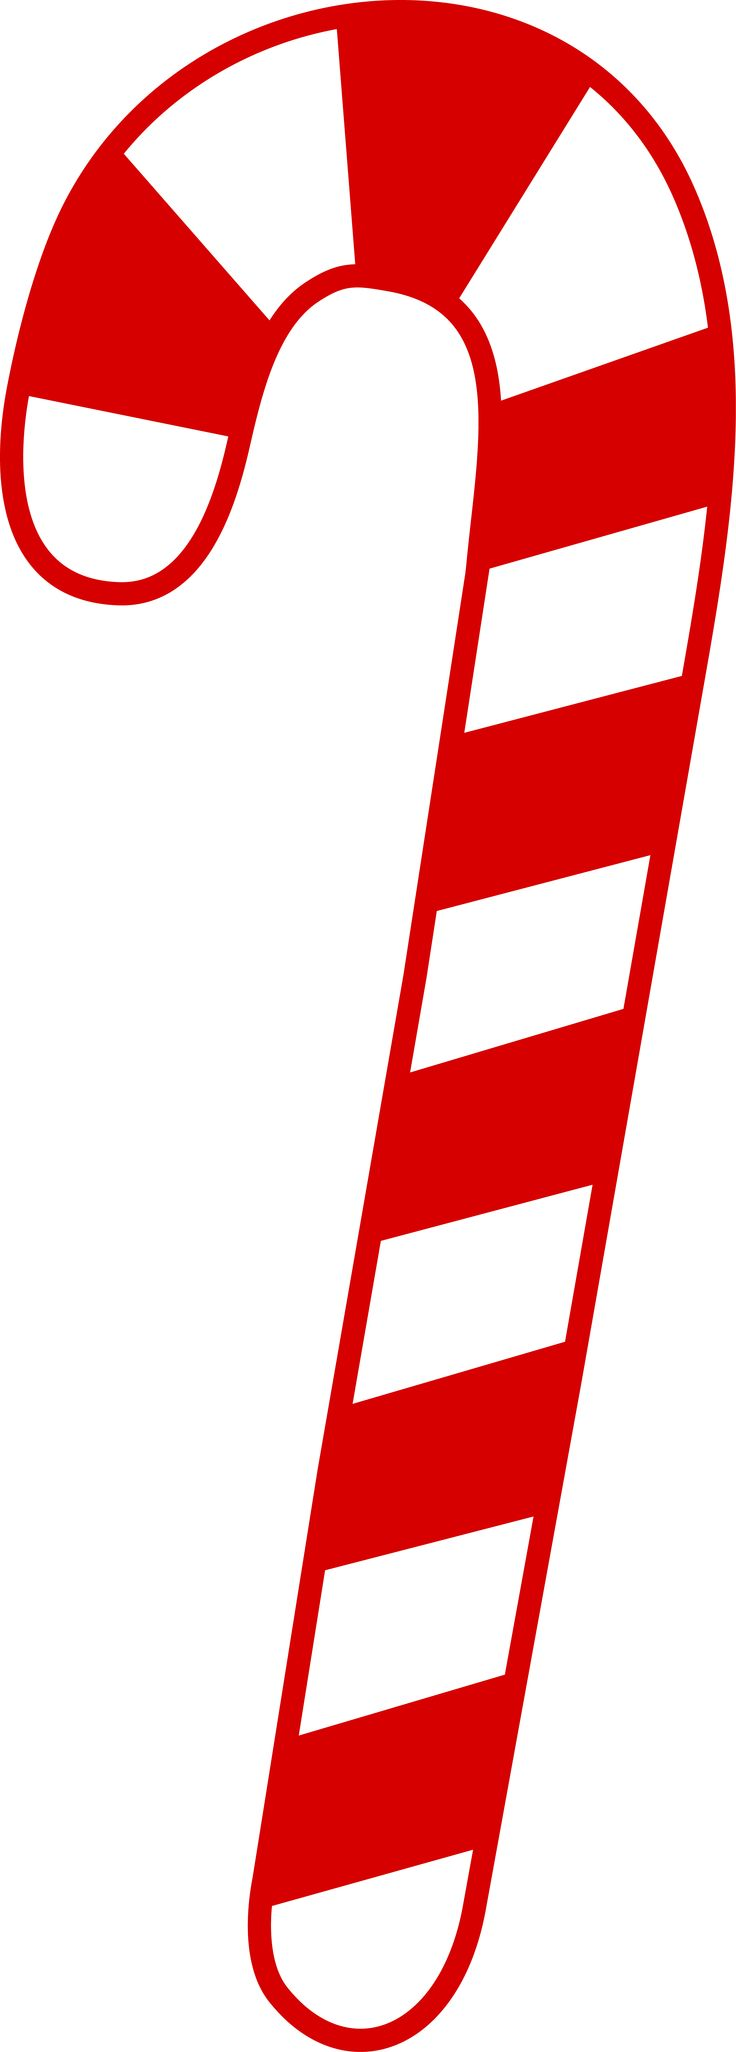 Number clipart candy cane Pinterest 356 on Library Clipart